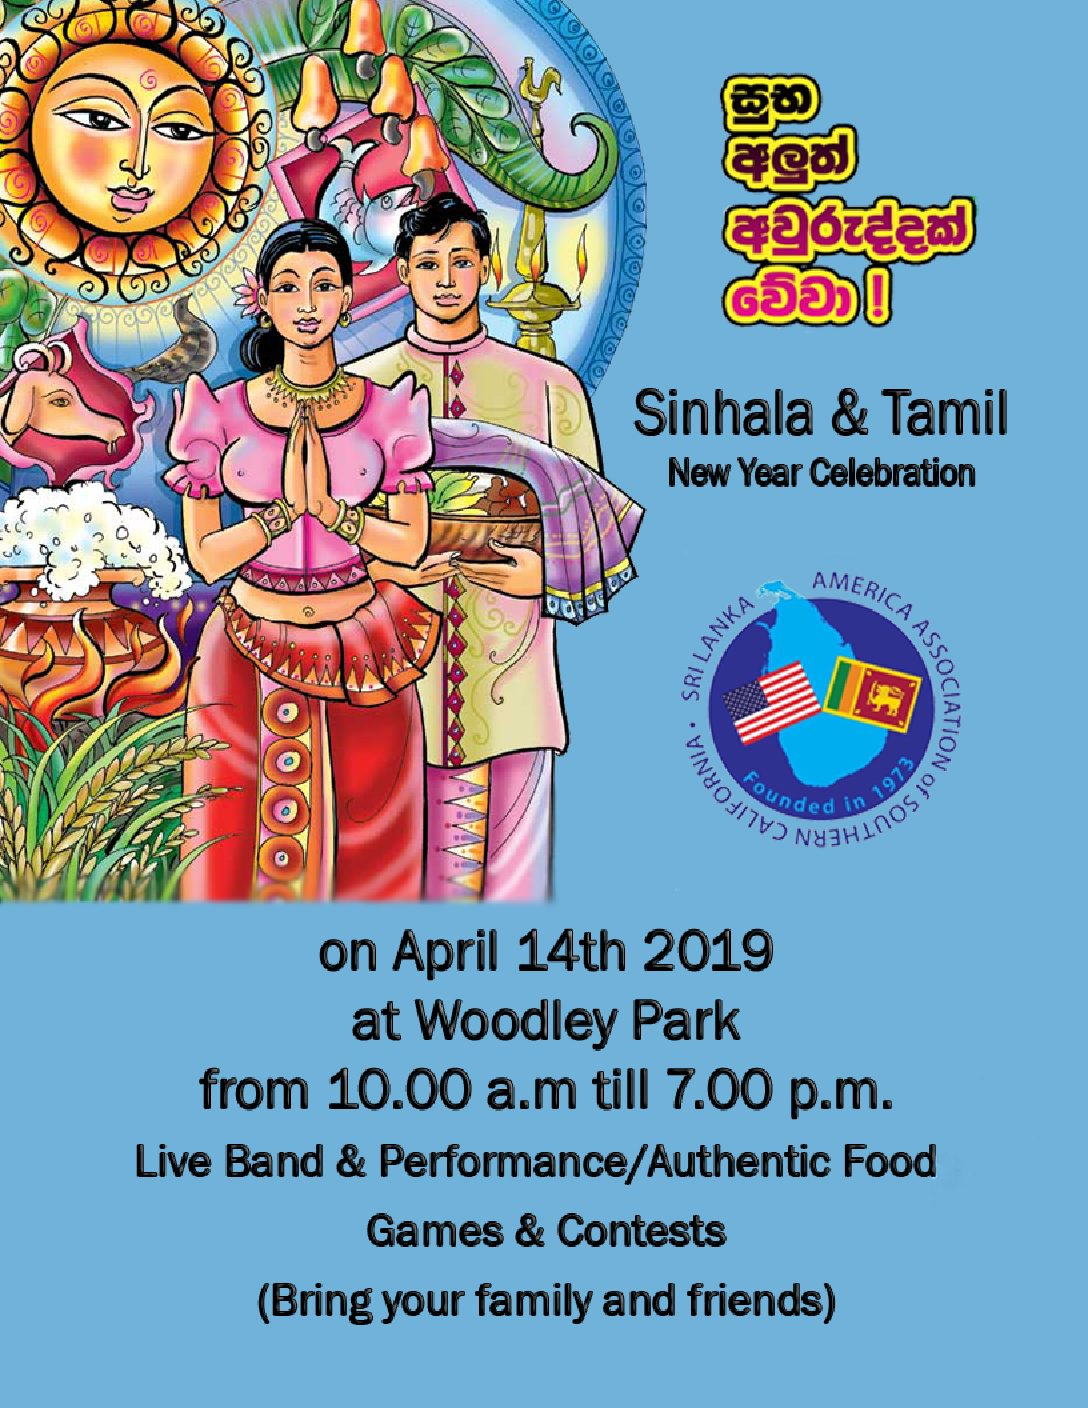 Sinhala & Tamil New Year Celebration